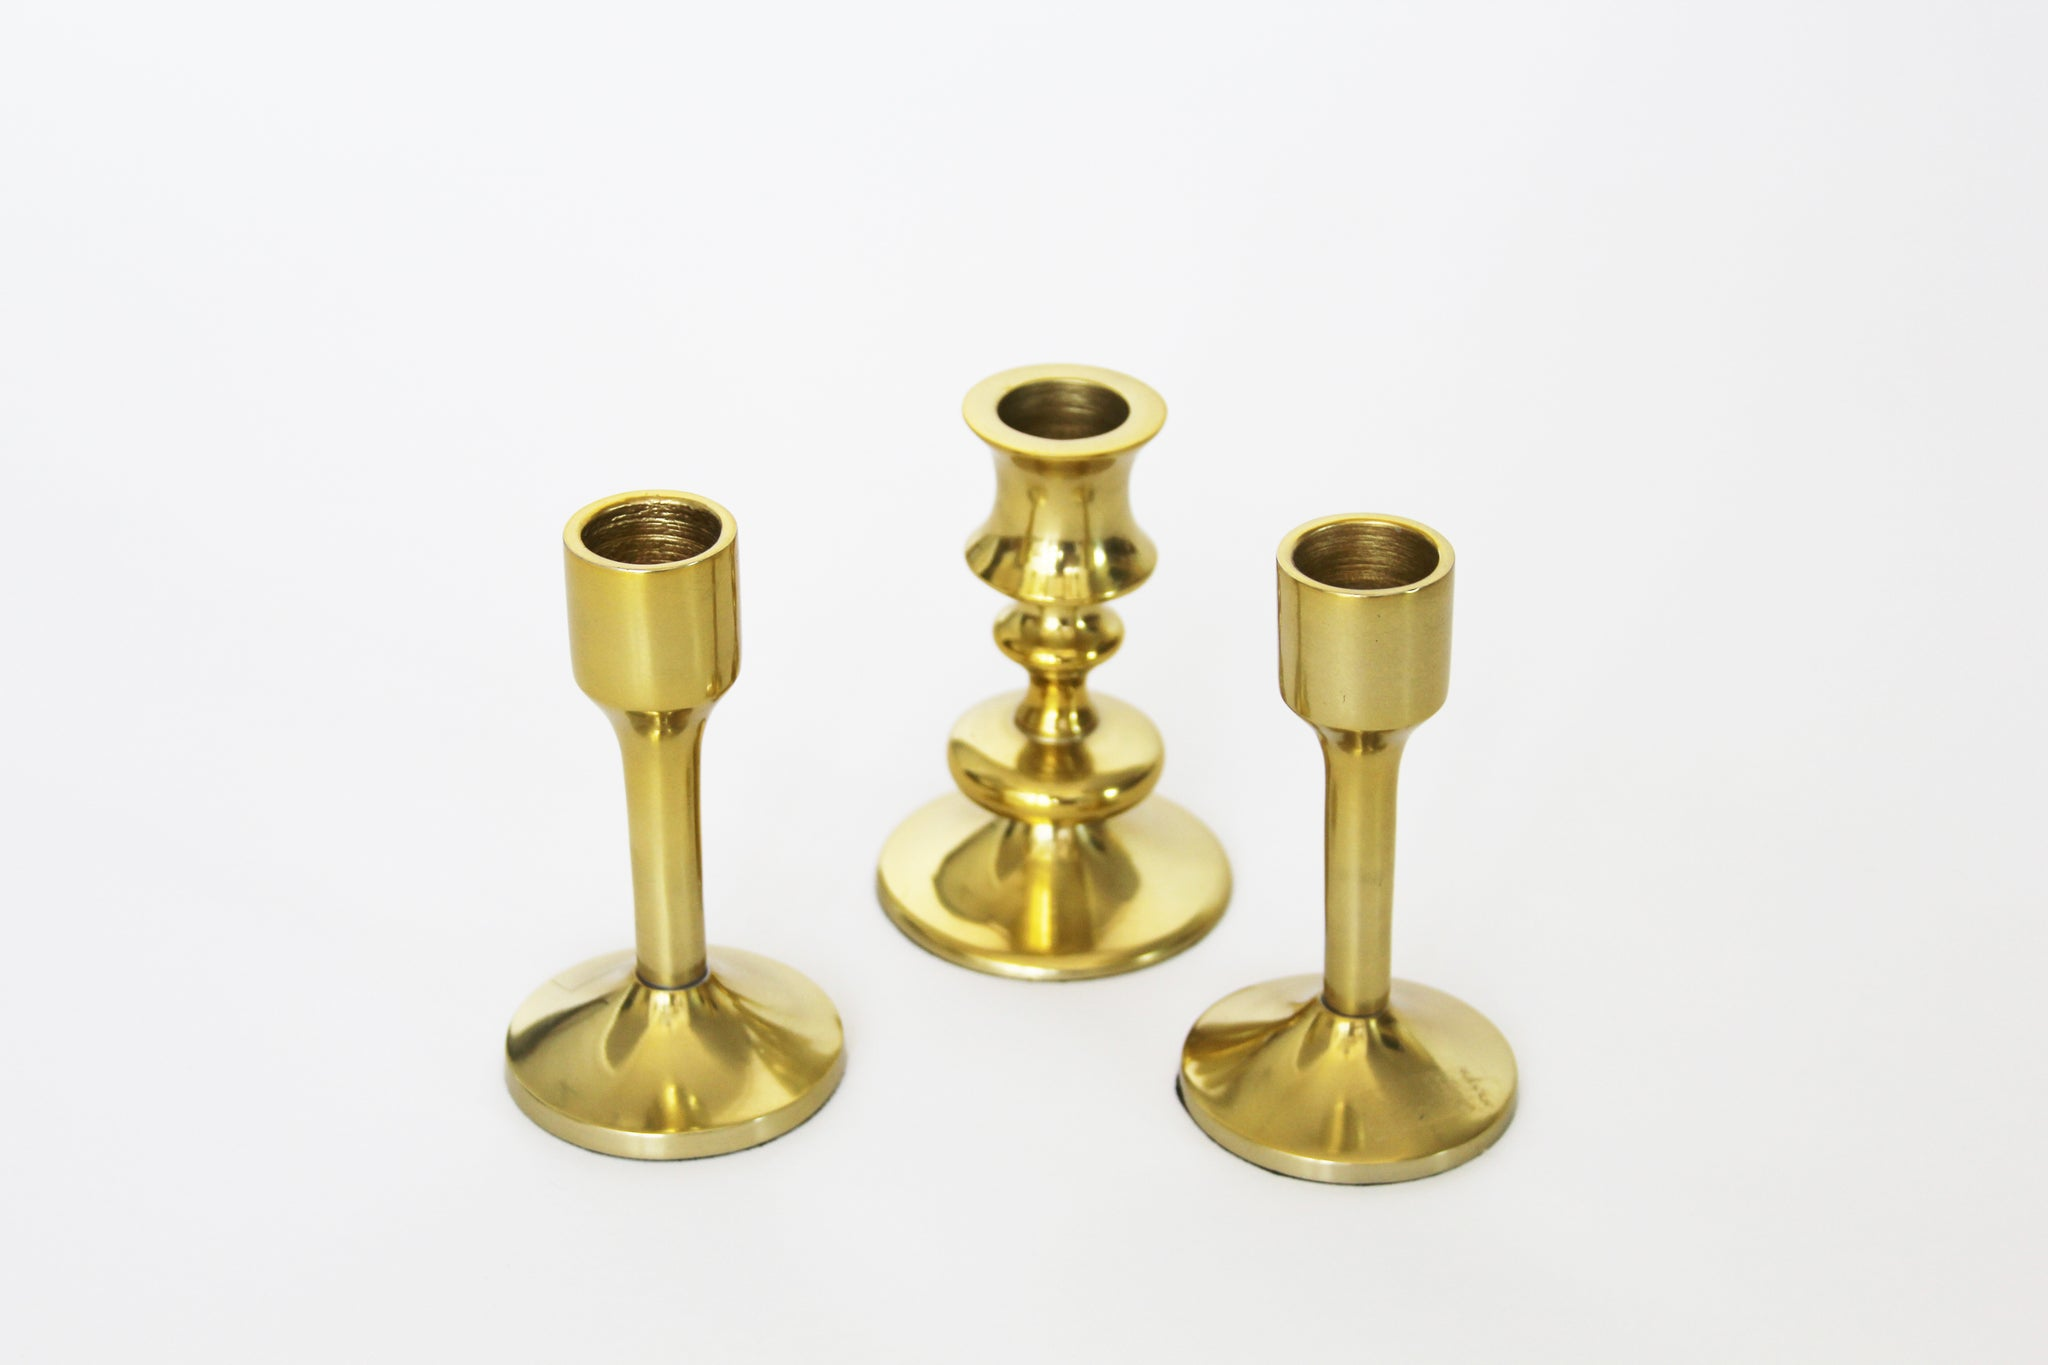 Midas Candle Holders